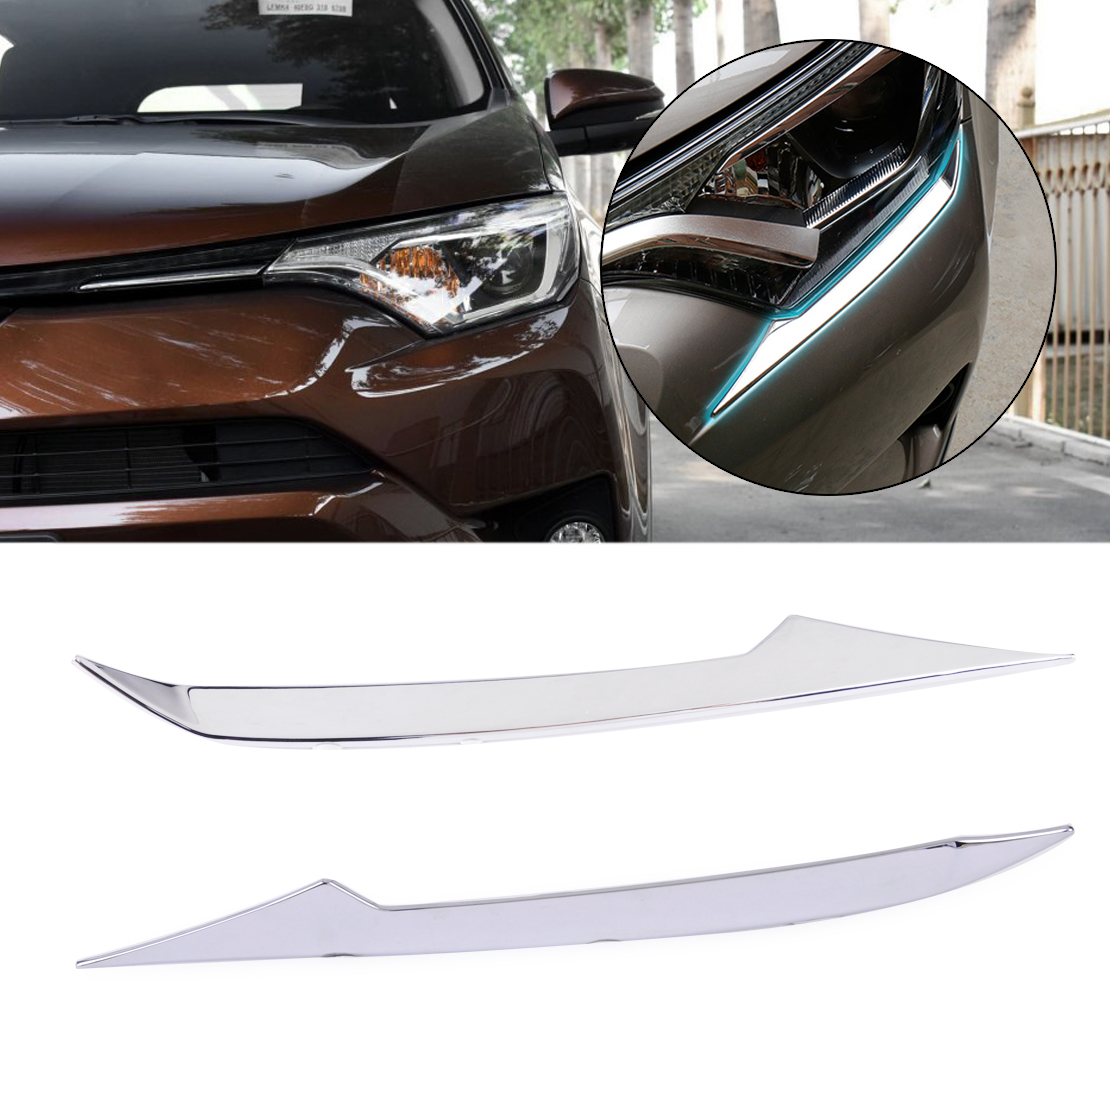 beler 1 Pair Silver ABS Plastic Chrome Plated Front Head Light Eyelid Trim Molding Fit for TOYOTA RAV4 2016-2017